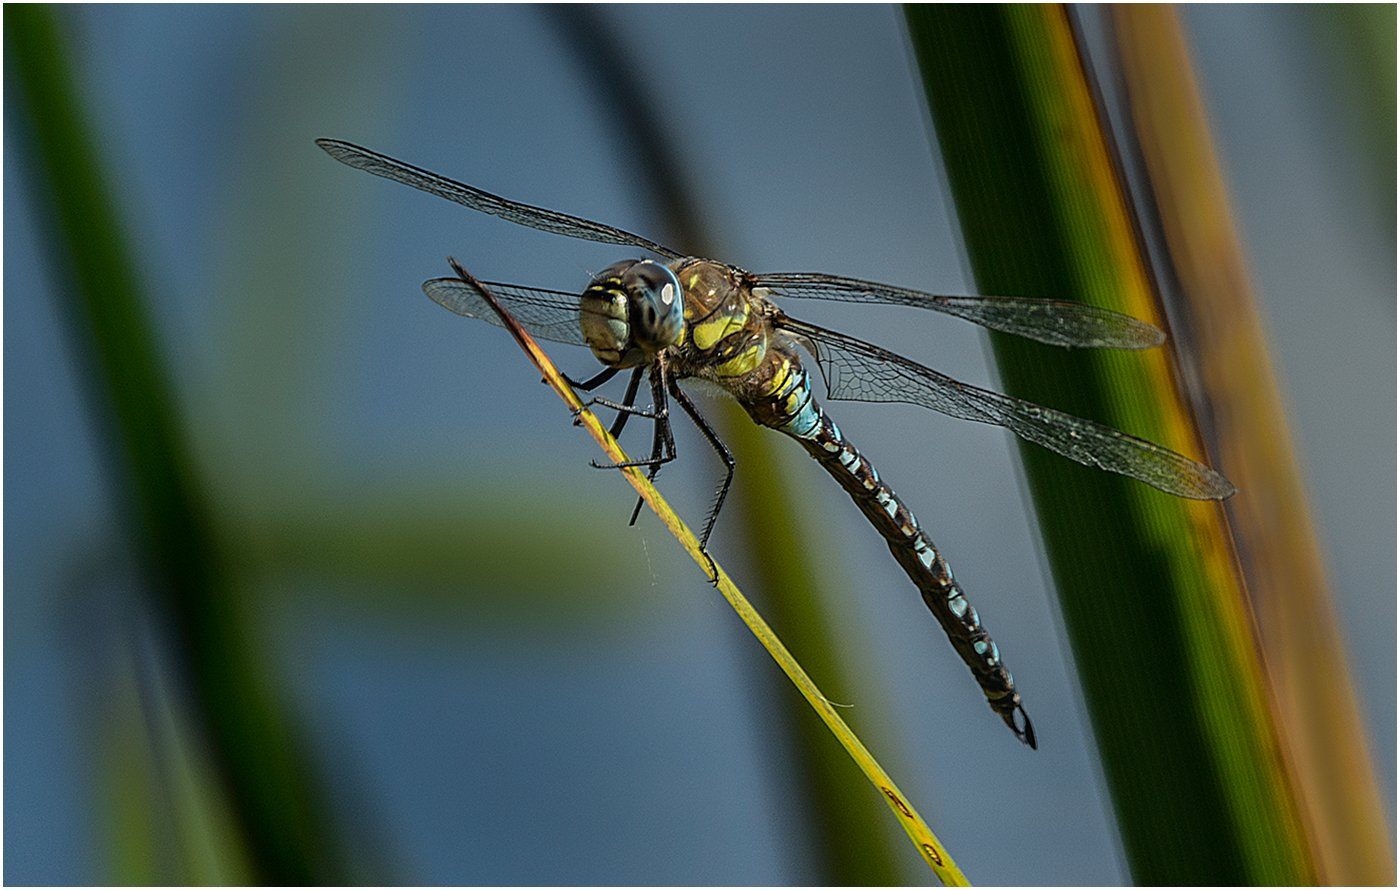 Highly Commended: Migrant Hawker Dragonfly (Dave Ormerod)